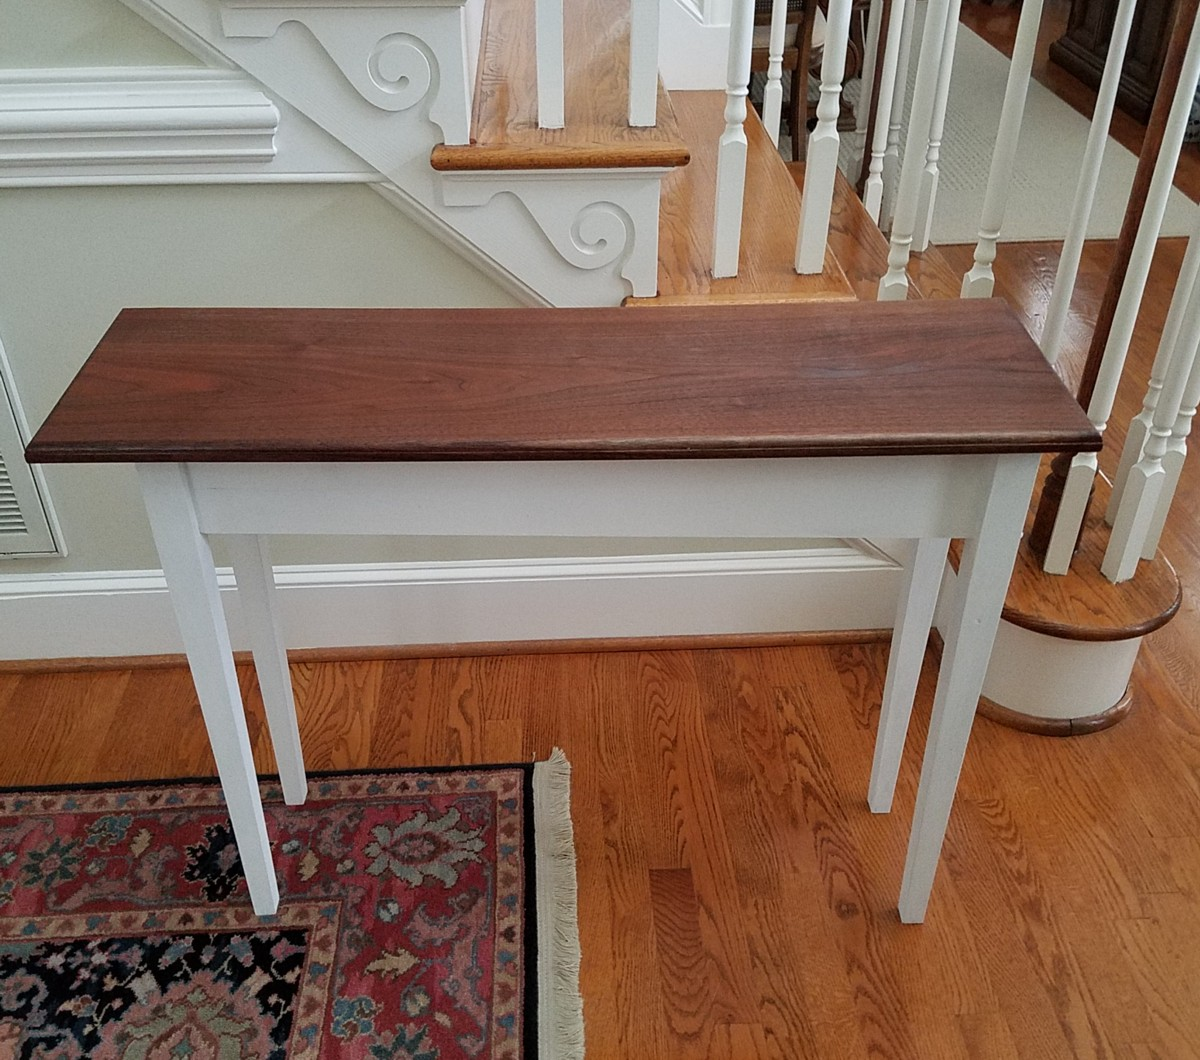 Handmade Console Table by Charlotte Woodwroker Roger Callahan